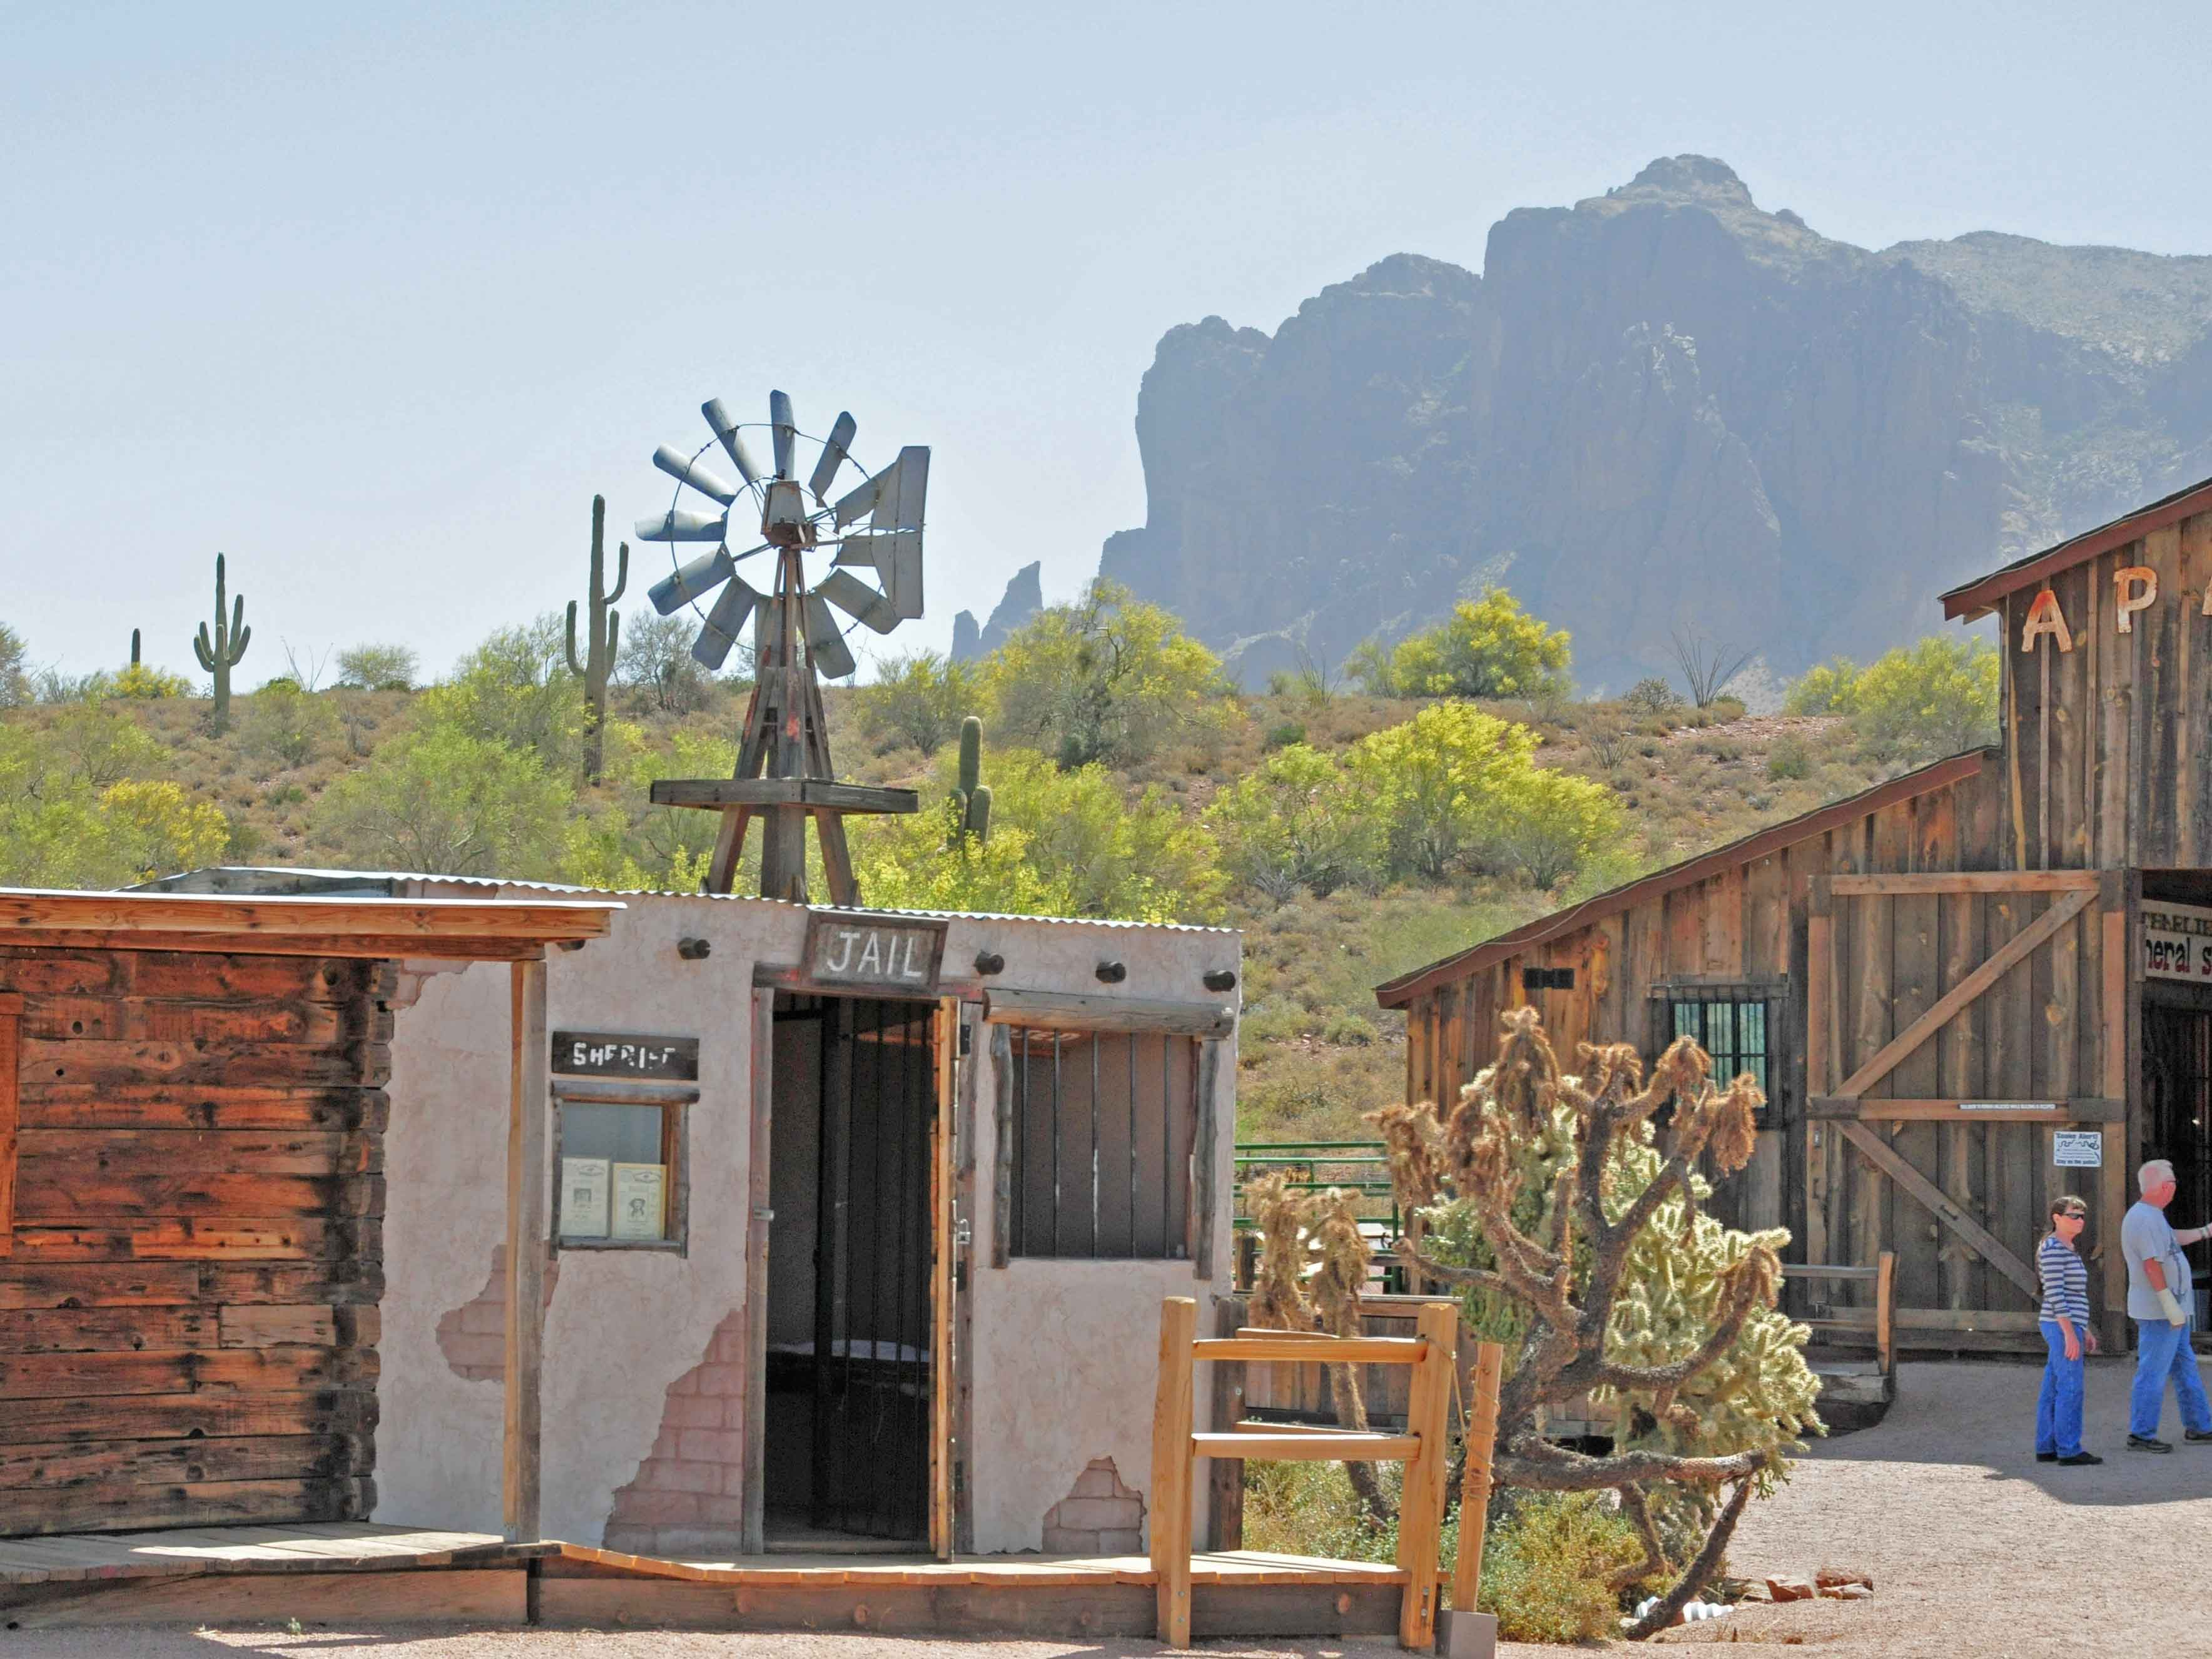 Gefängnis im Superstition Mountain Museum